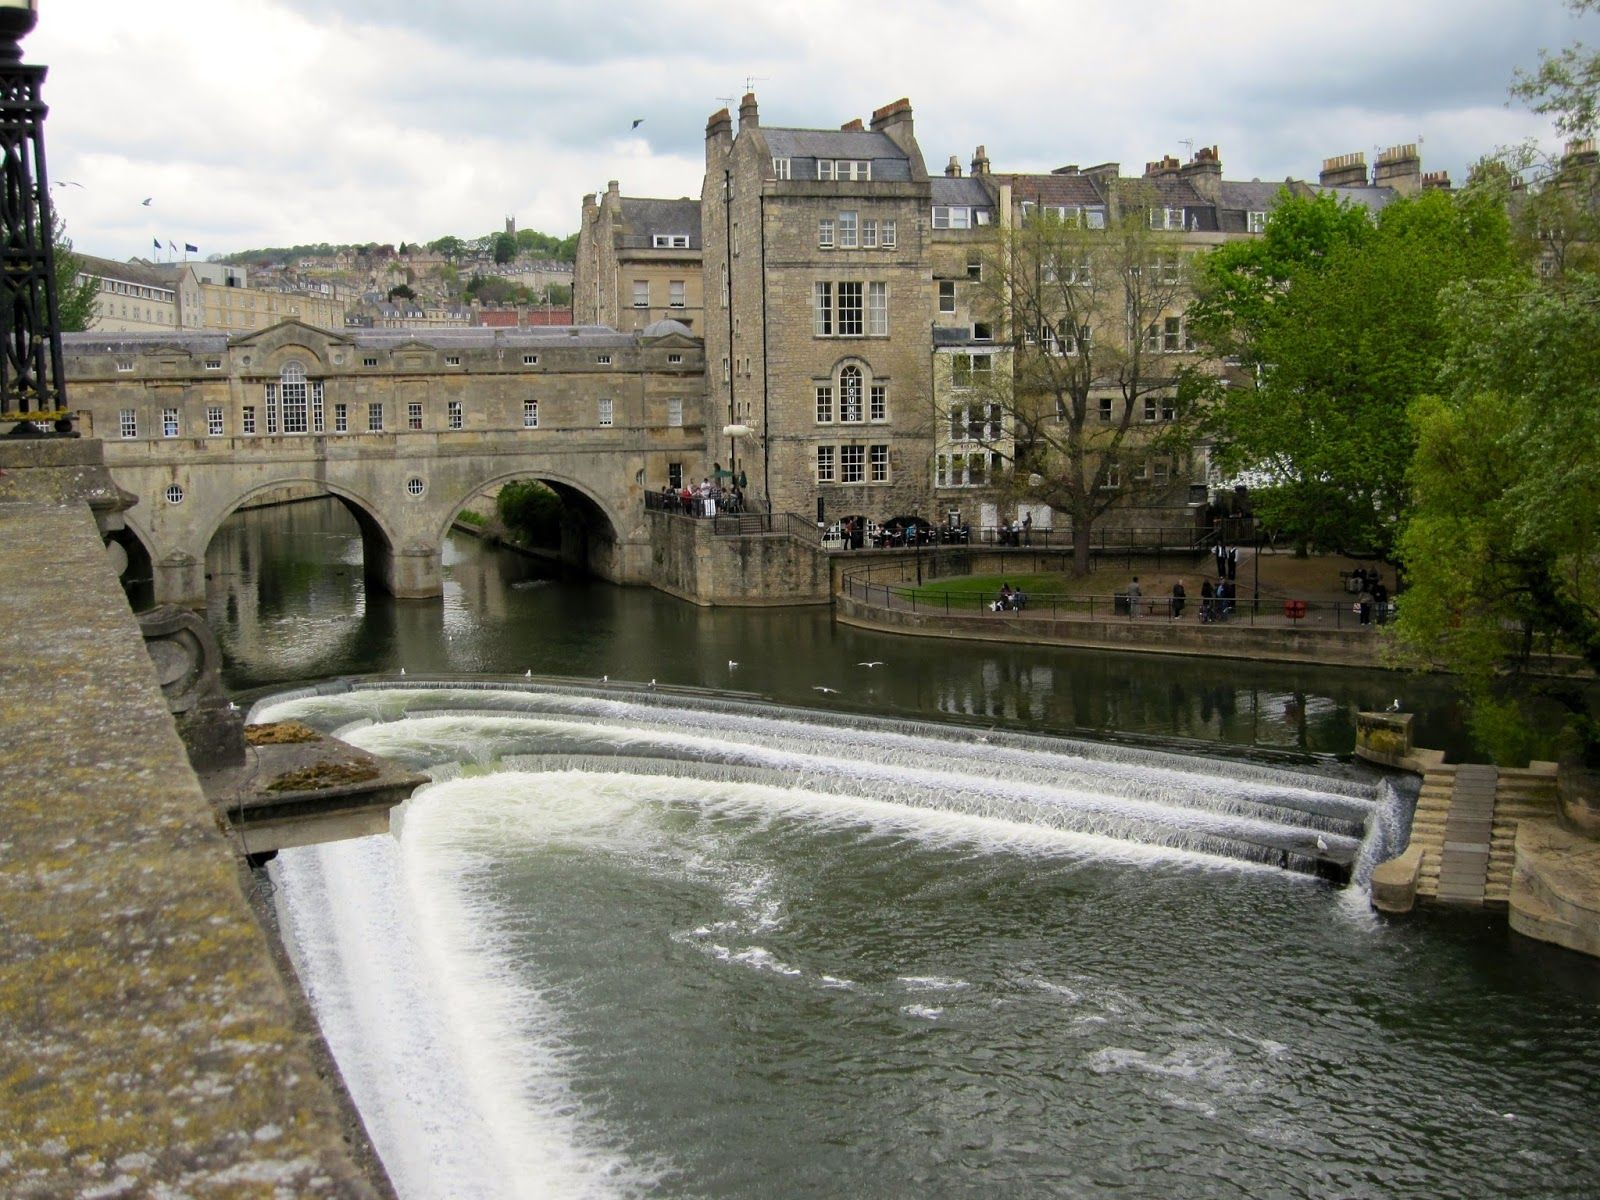 Fiction The Roman Spa Town Of Bath Day Trips From London Spa Towns